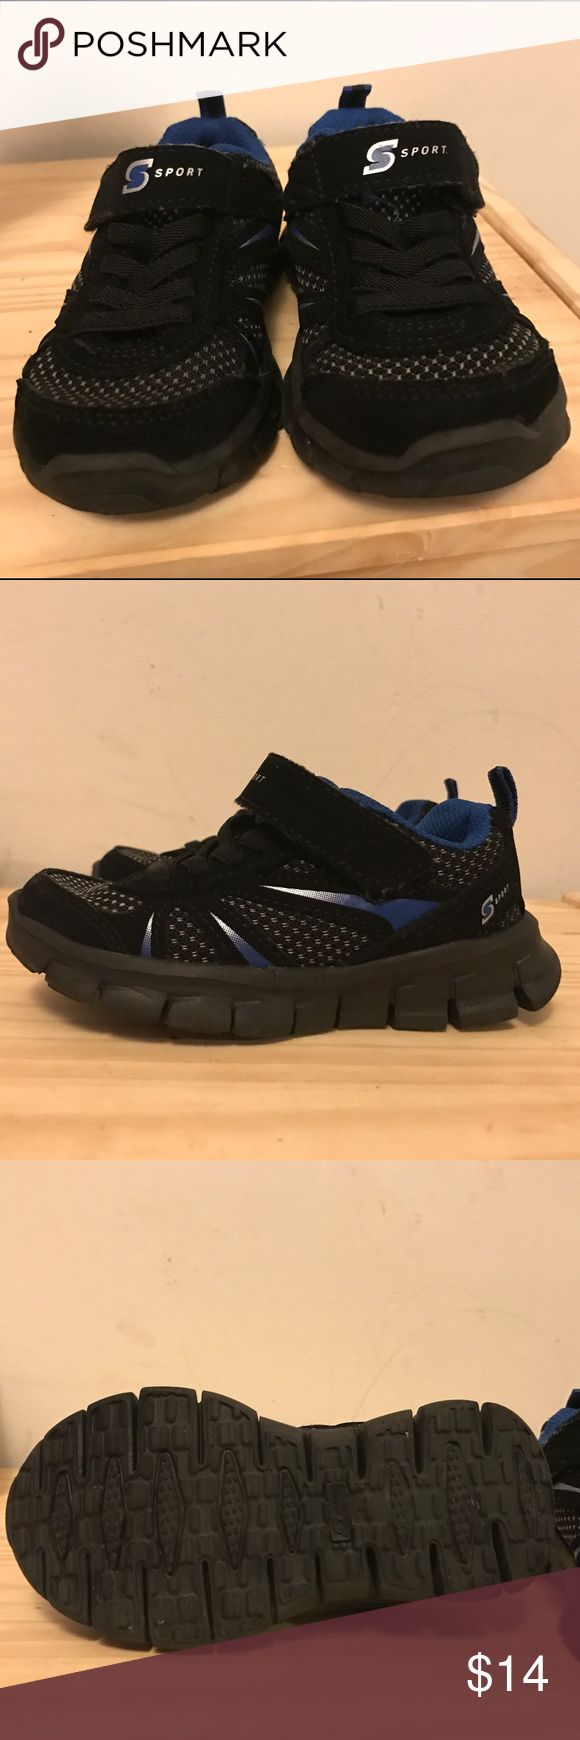 Big boy S Sport designed by Skechers NWOT. I bought these for my son and he hit a growth spurt so he didn't get to wear them more than once. They are practically new. Velcro tie and lightweight black sneakers with blue detail. Skechers Shoes Sneakers